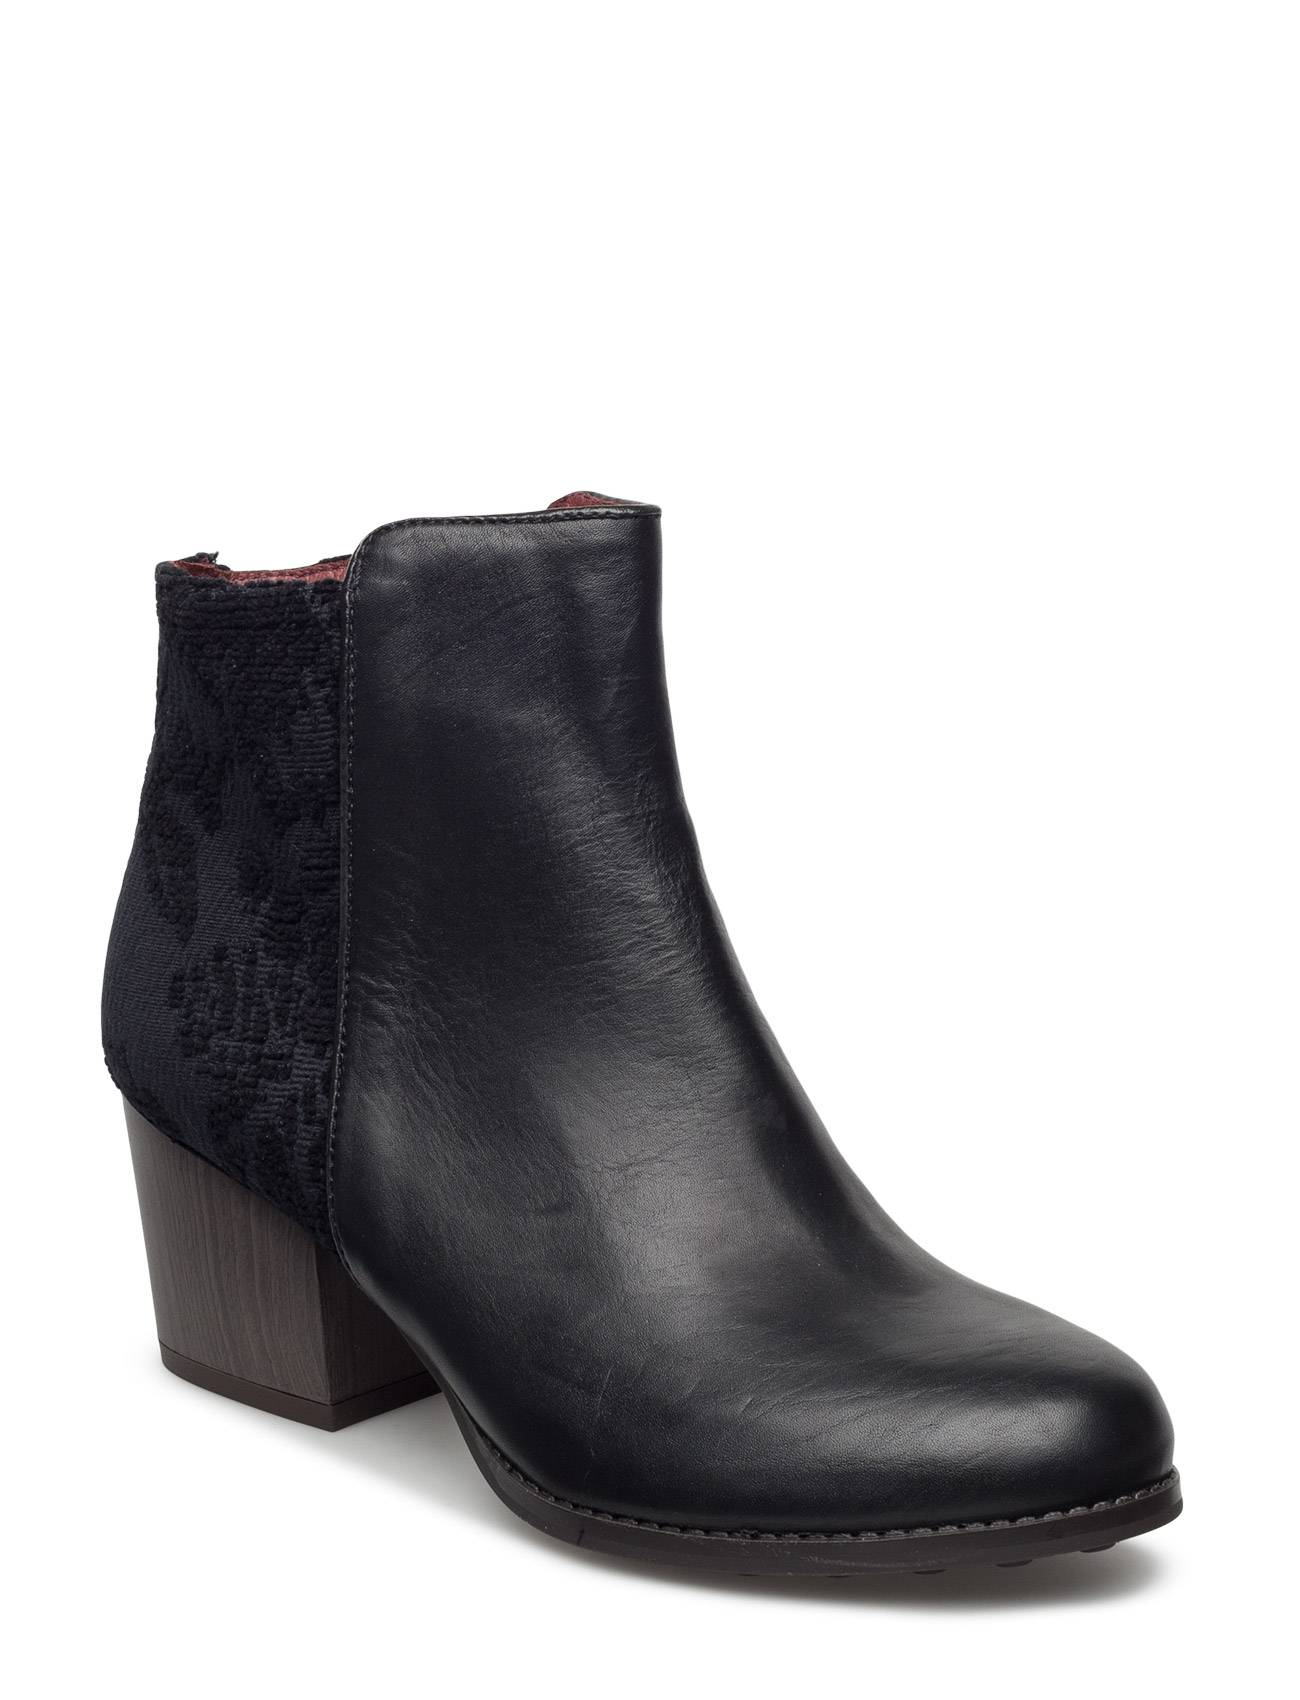 Desigual Shoes Shoes Black Sheep Country